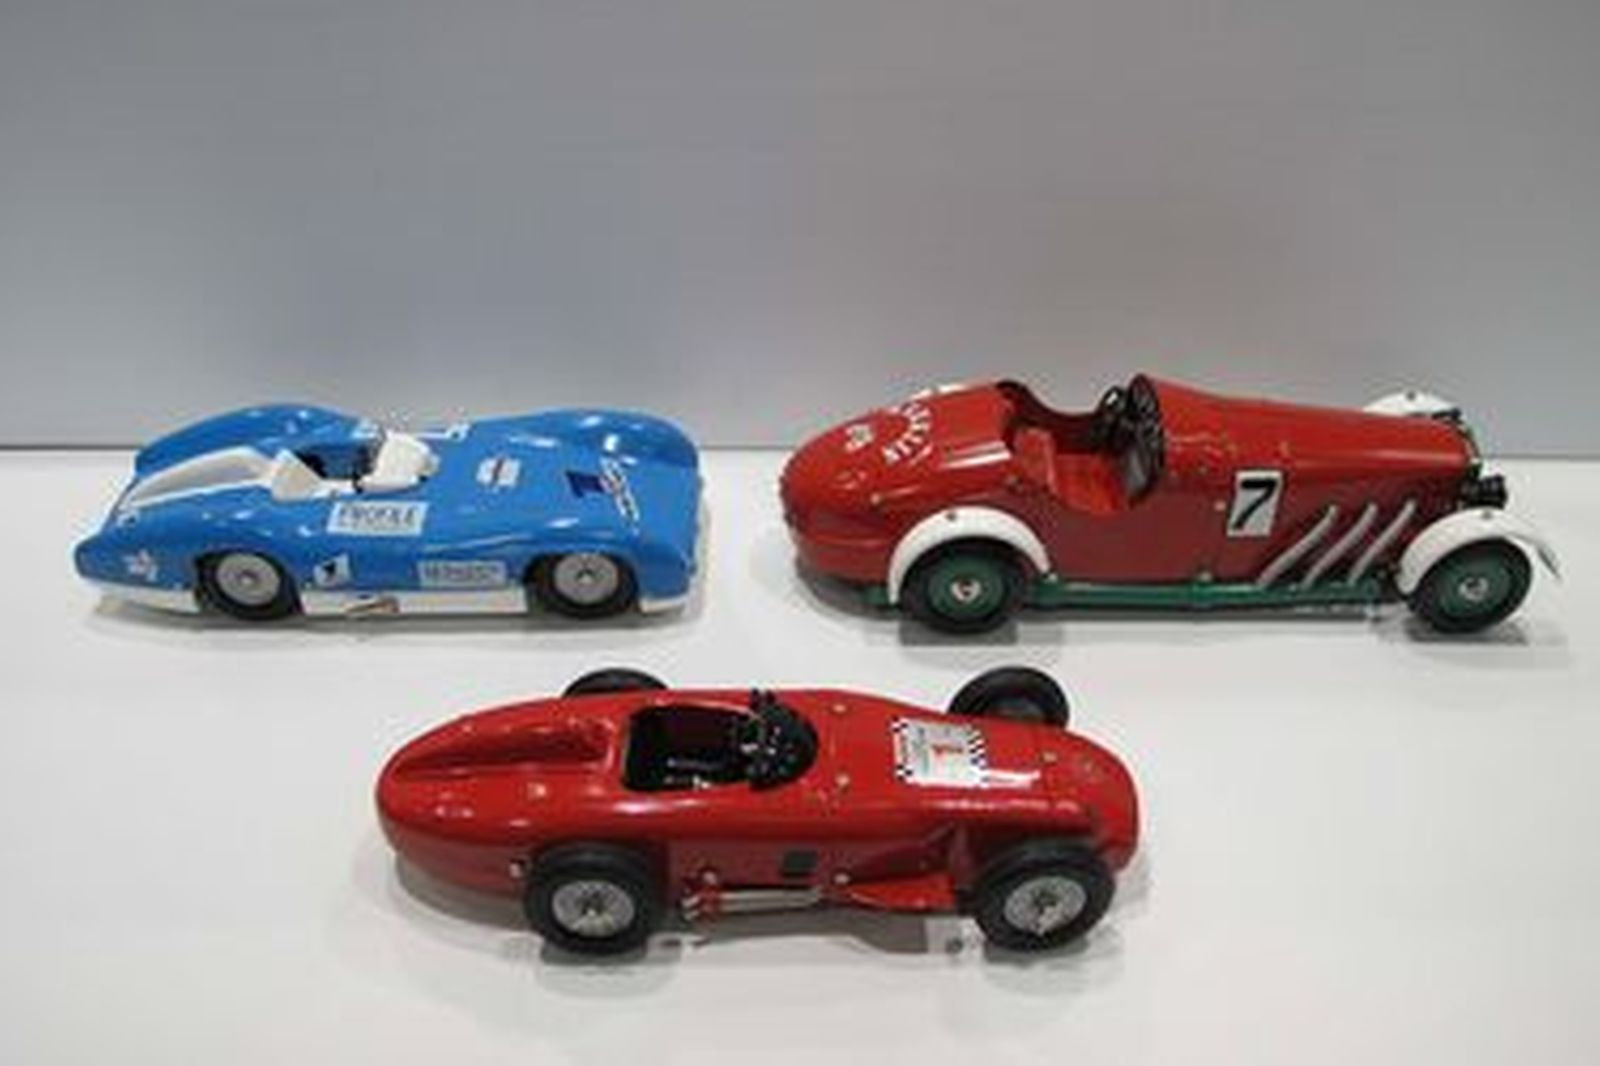 Sold: Model Cars x 3 - Marklin Clockwork Tin-plate Cars 1 x